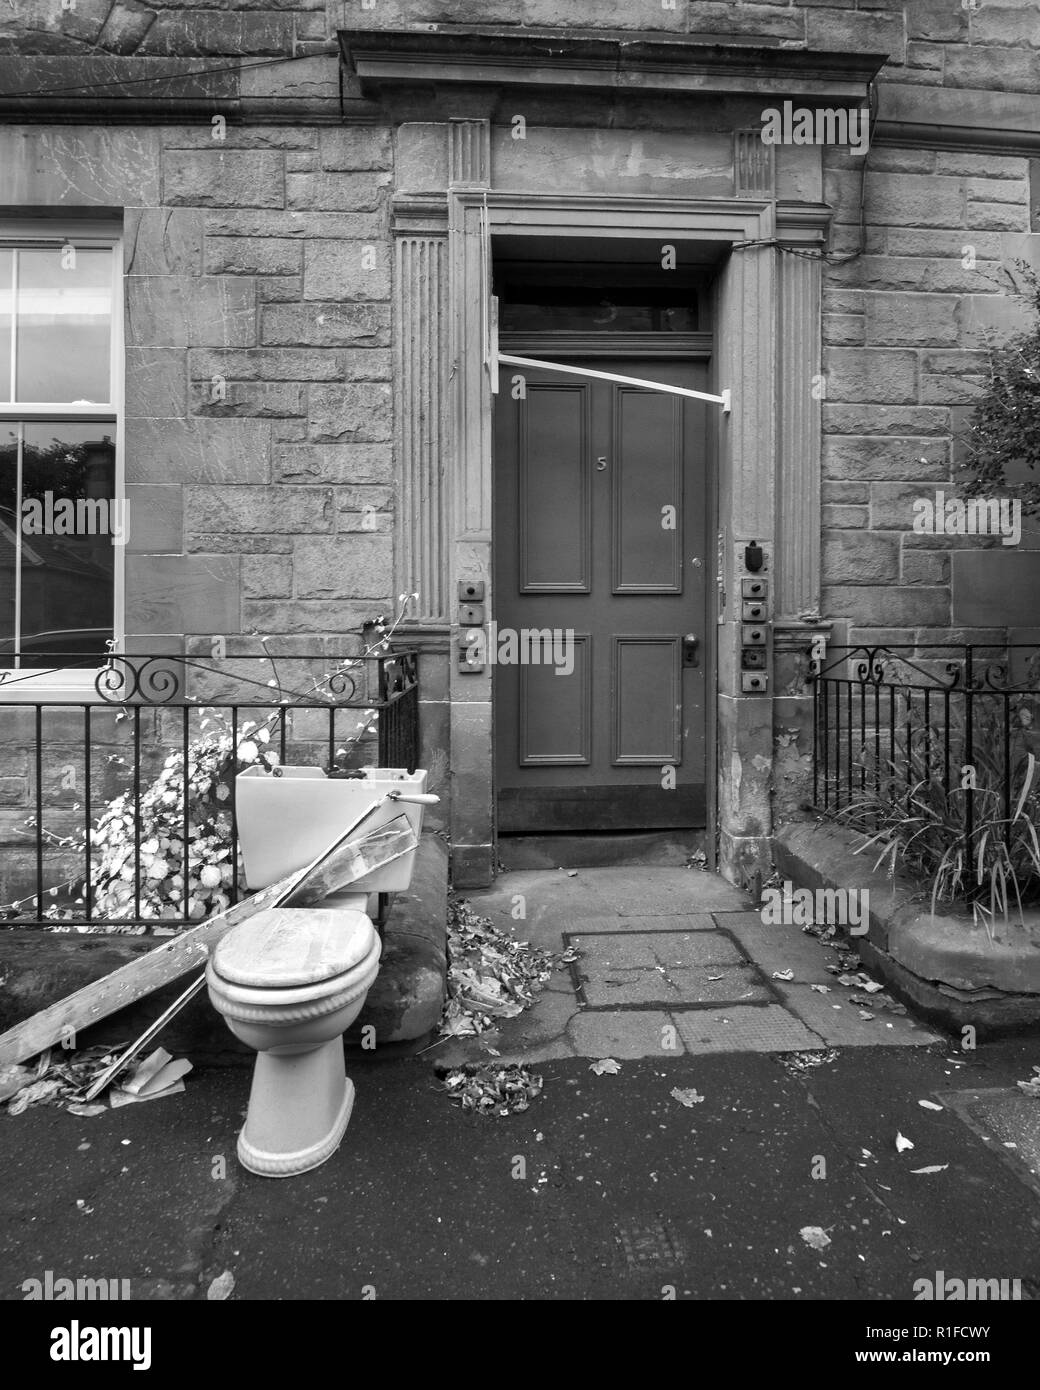 EDINBURGH, SCOTLAND - NOVEMBER 10th 2018: A toilet being left outside. Hopefully for the bin men to collect. - Stock Image